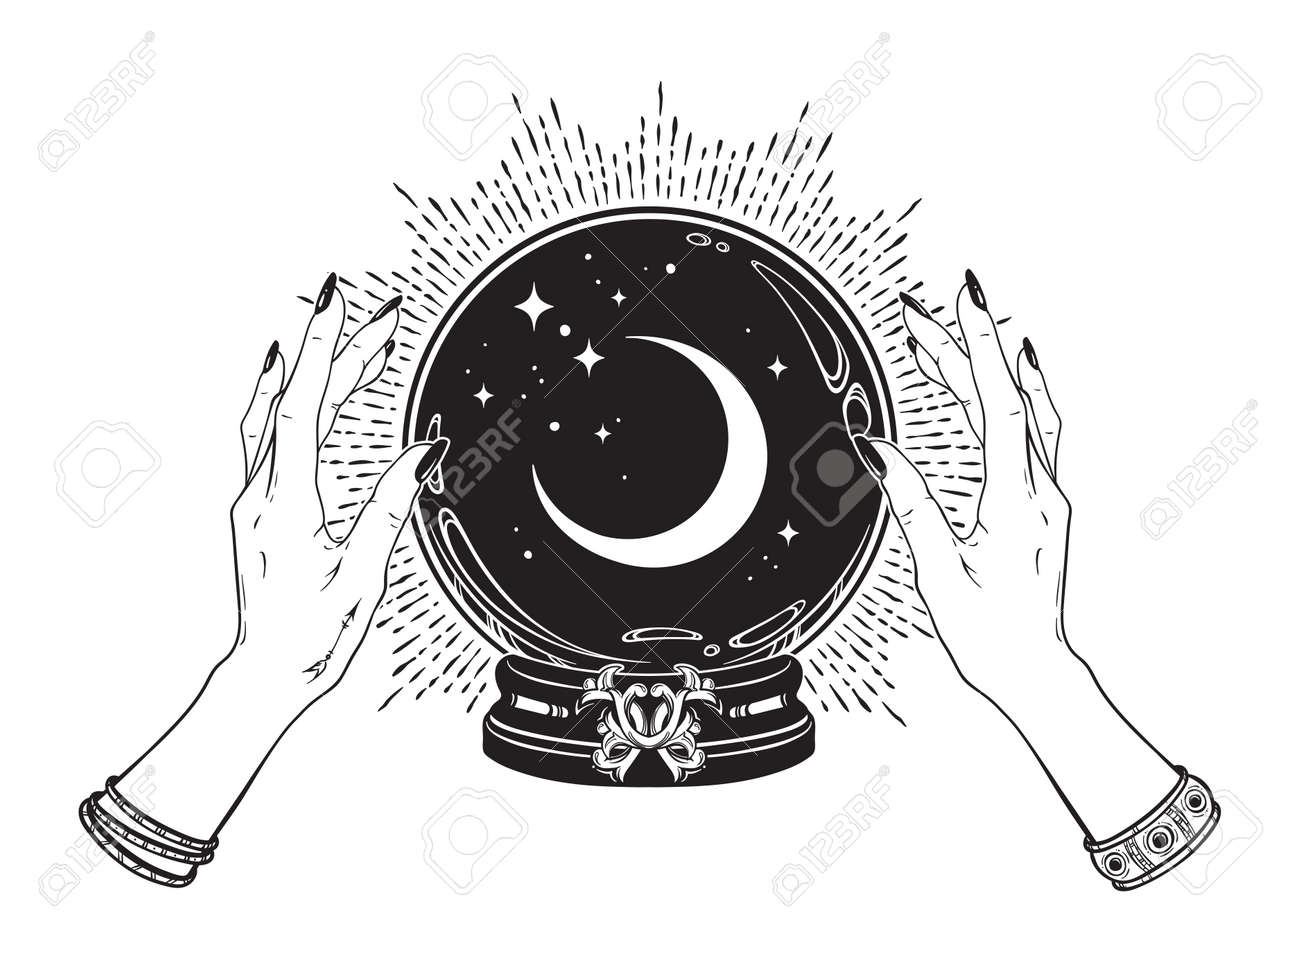 Magic crystal ball with crescent moon and stars in hands of fortune teller line art and dot work. Boho chic tattoo, poster or altar veil print design vector illustration. - 169999768